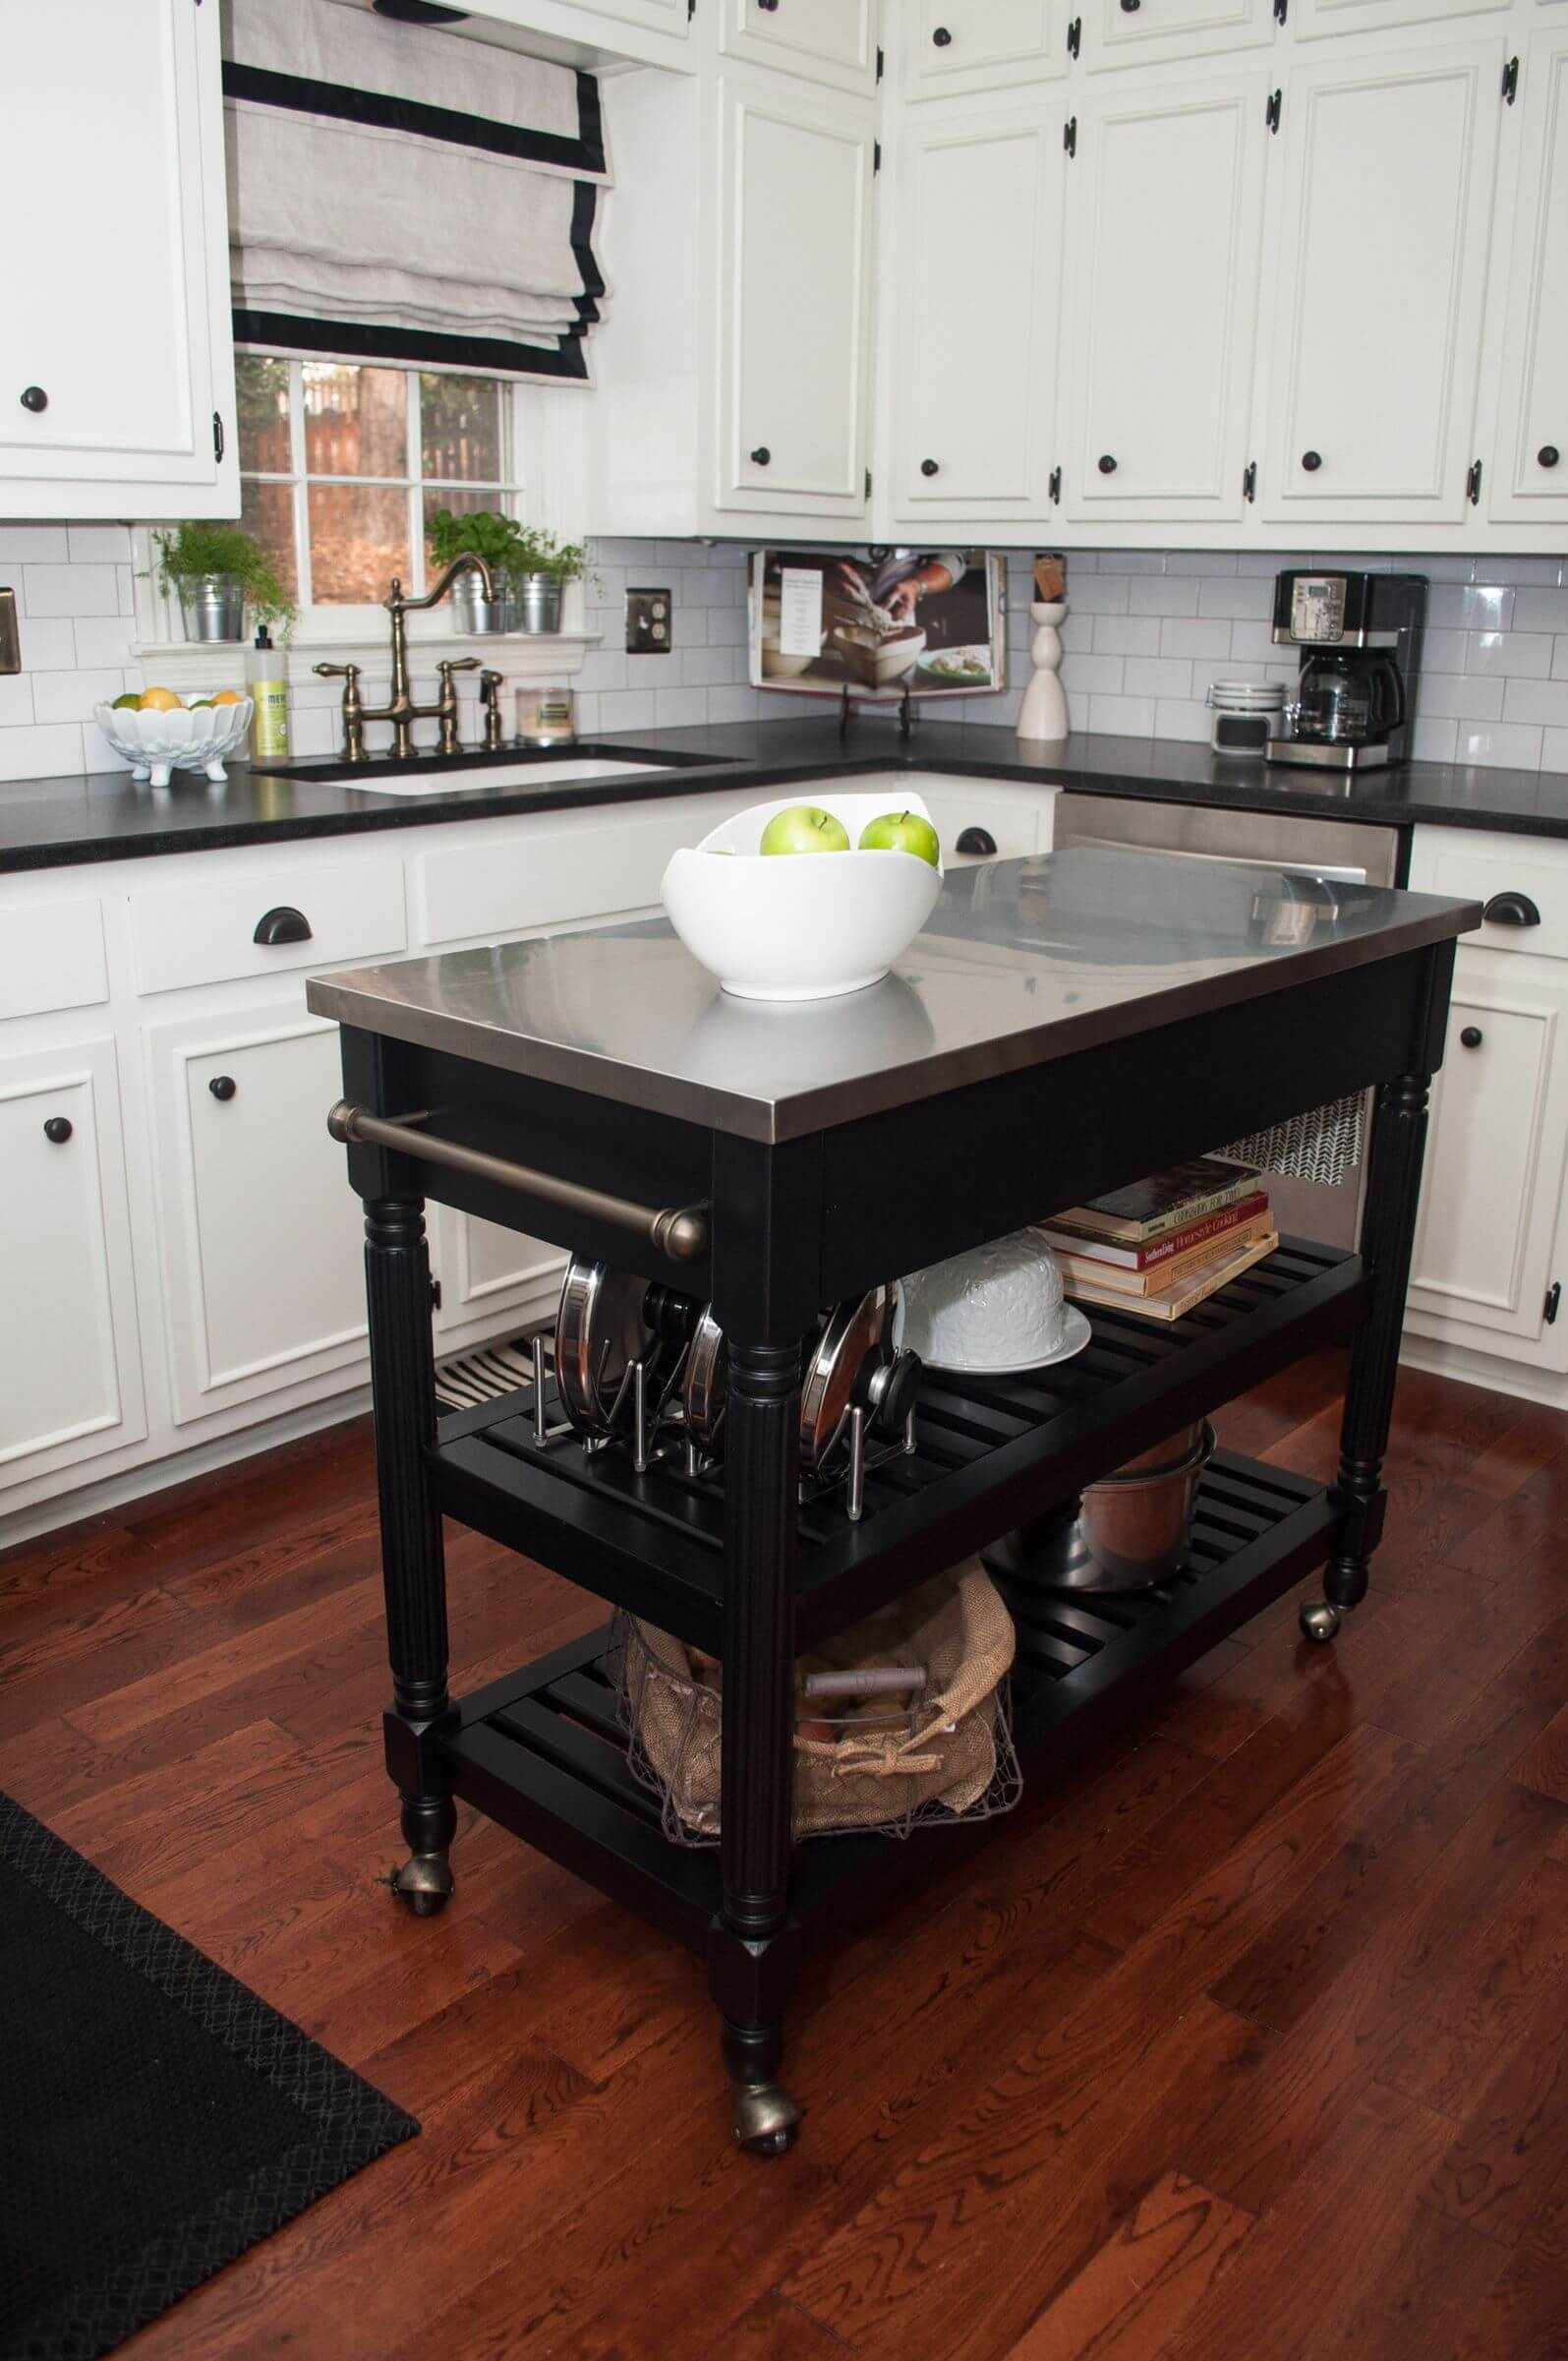 Permalink to Awesome Purchase Kitchen island